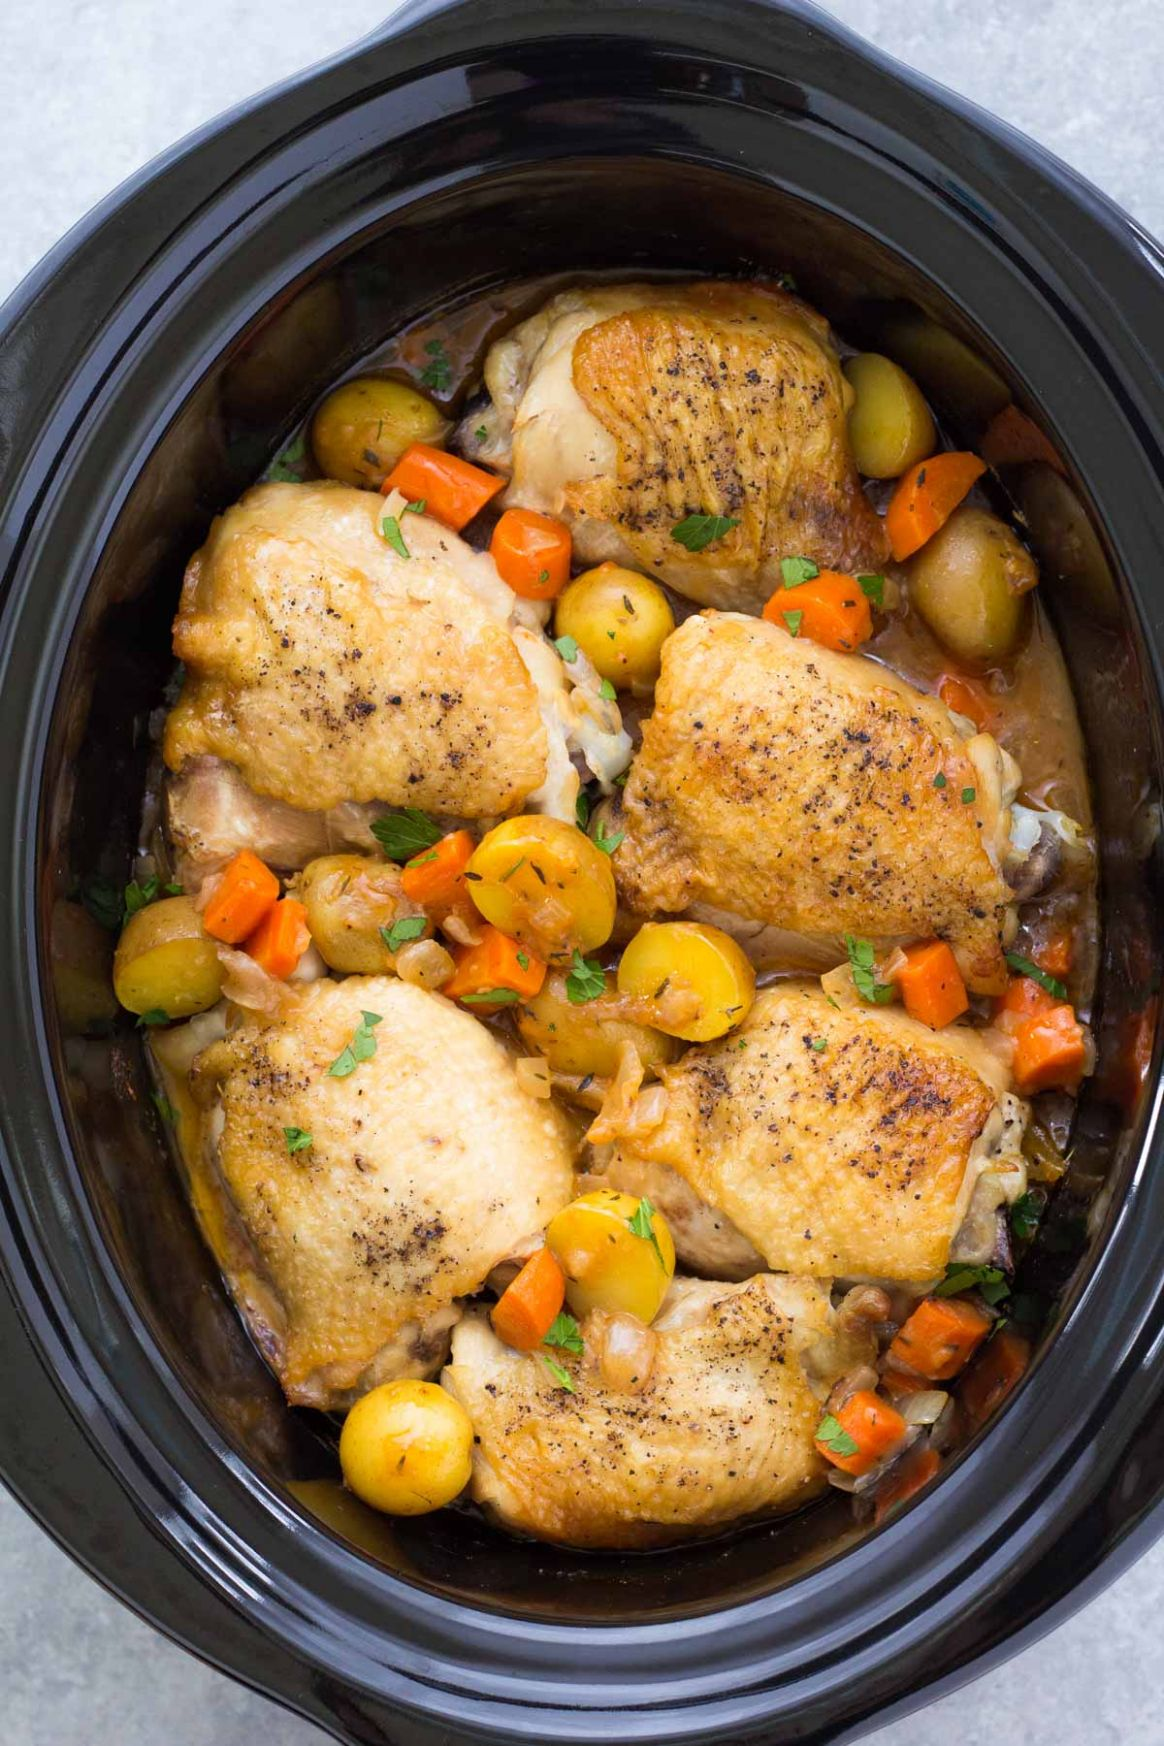 Crockpot Chicken and Potatoes - Recipes Chicken Breast In Slow Cooker